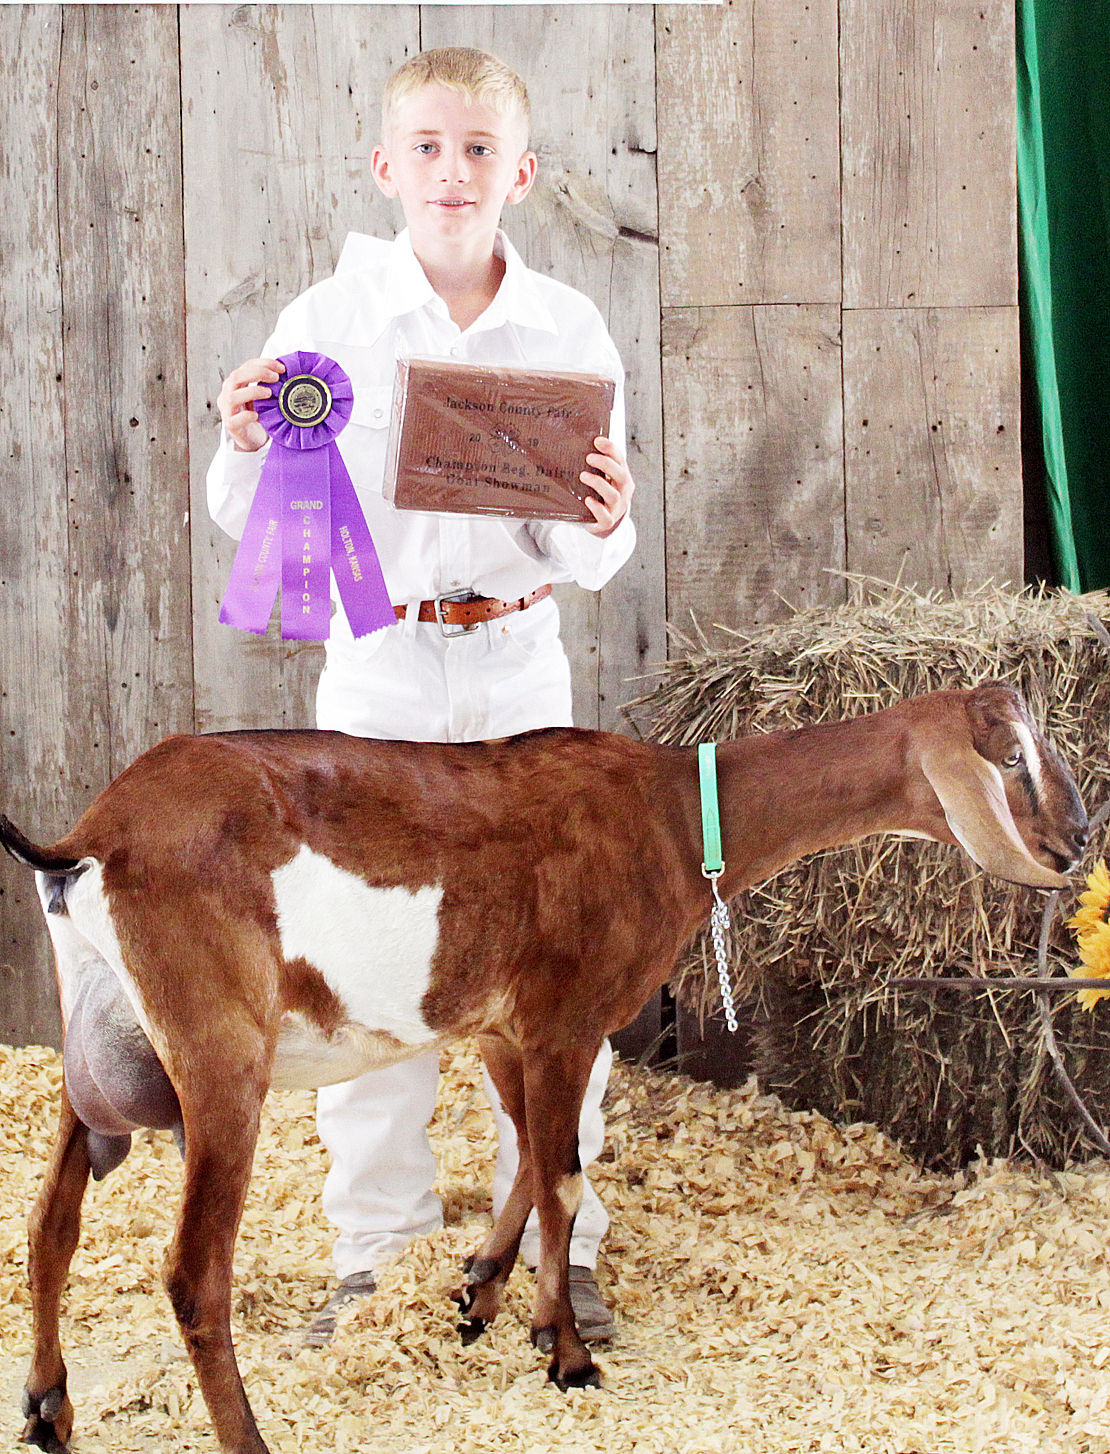 Tucker Terry - Beginning Dairy Goat Showman